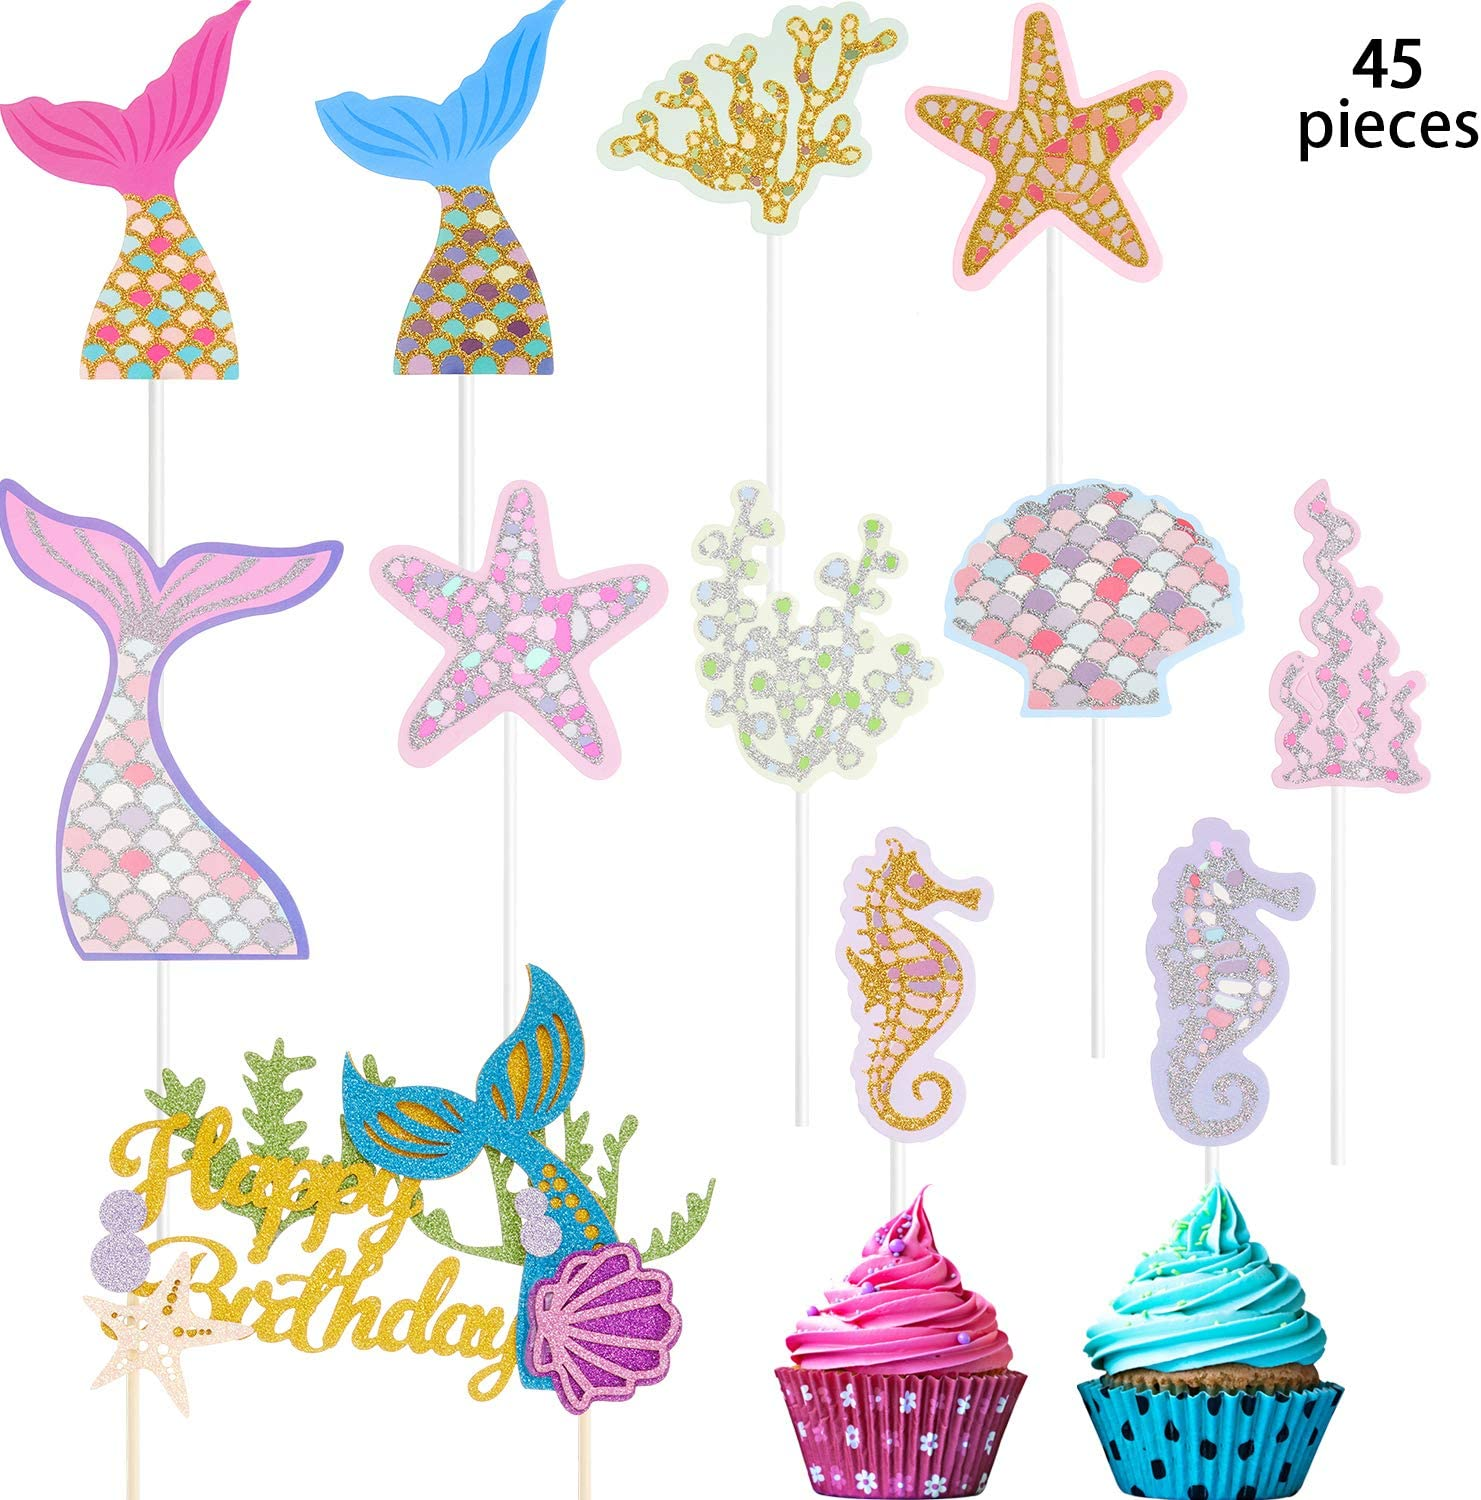 Mermaid Theme Cake Toppers Set, Include Mermaid Tail Glitter Cake Topper and 44 Pieces Ocean Glitter Cake Toppers for Baby Shower Party